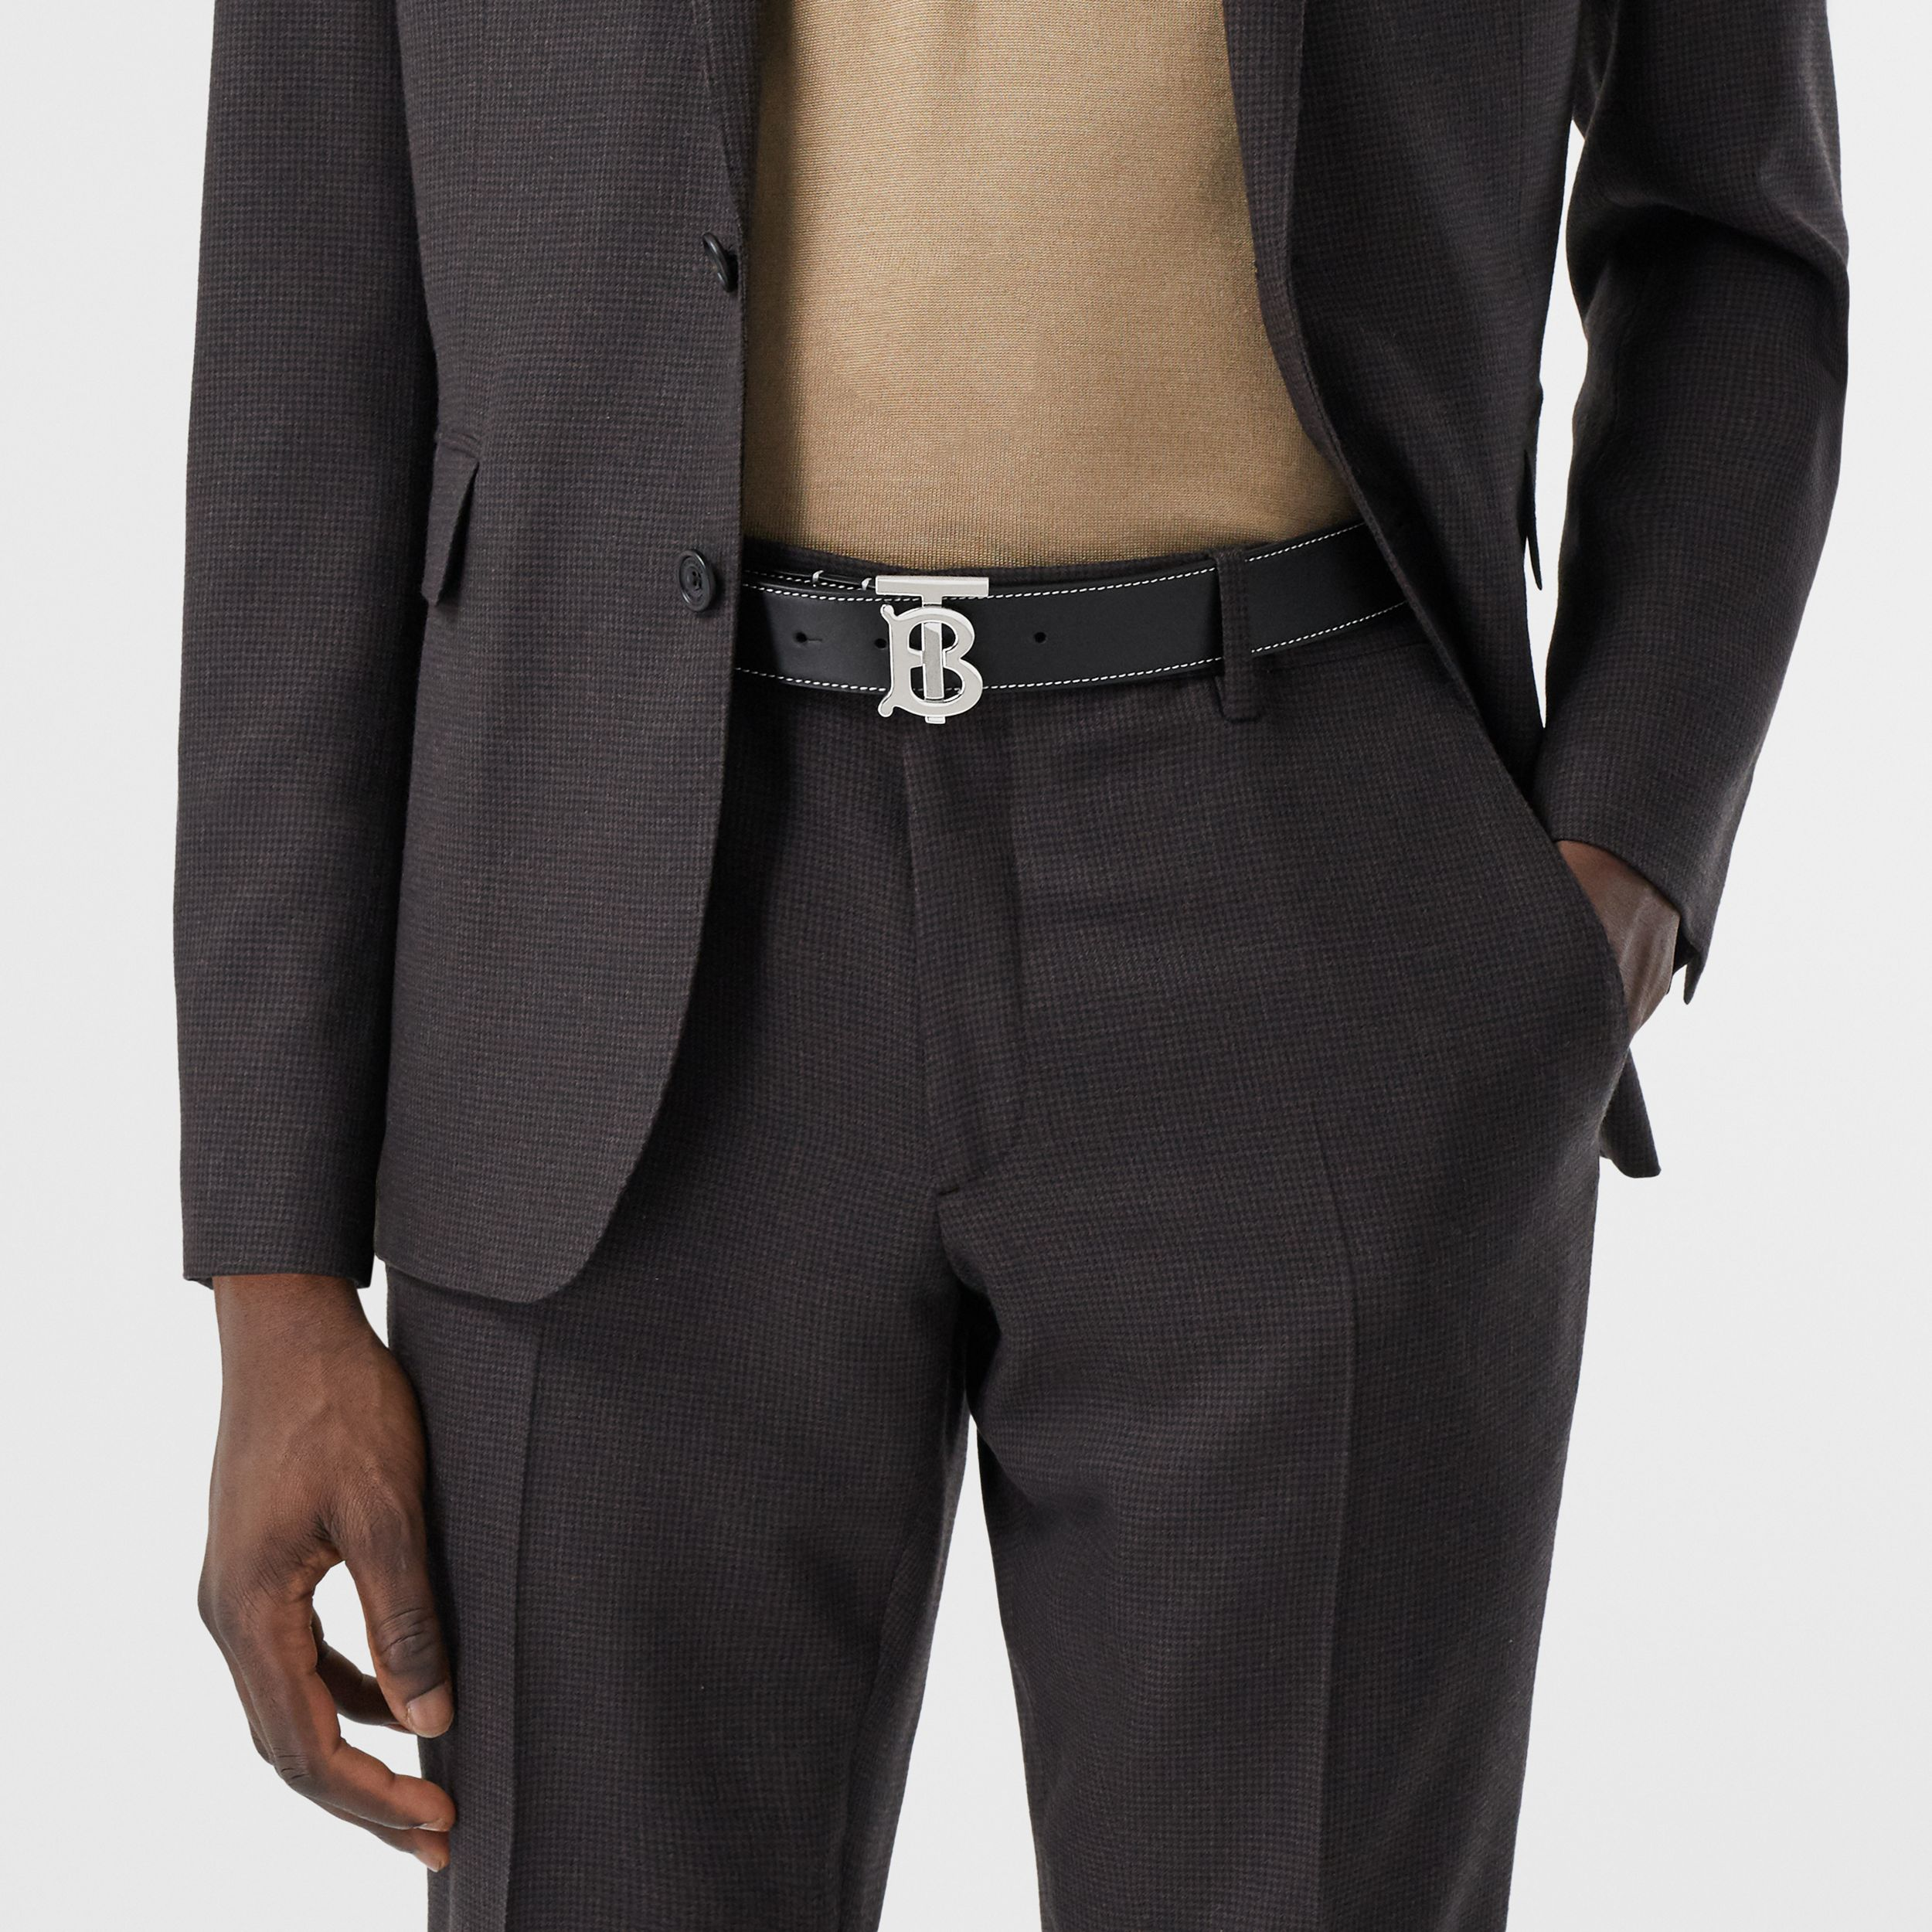 Monogram Motif Topstitched Leather Belt in Black - Men | Burberry - 3